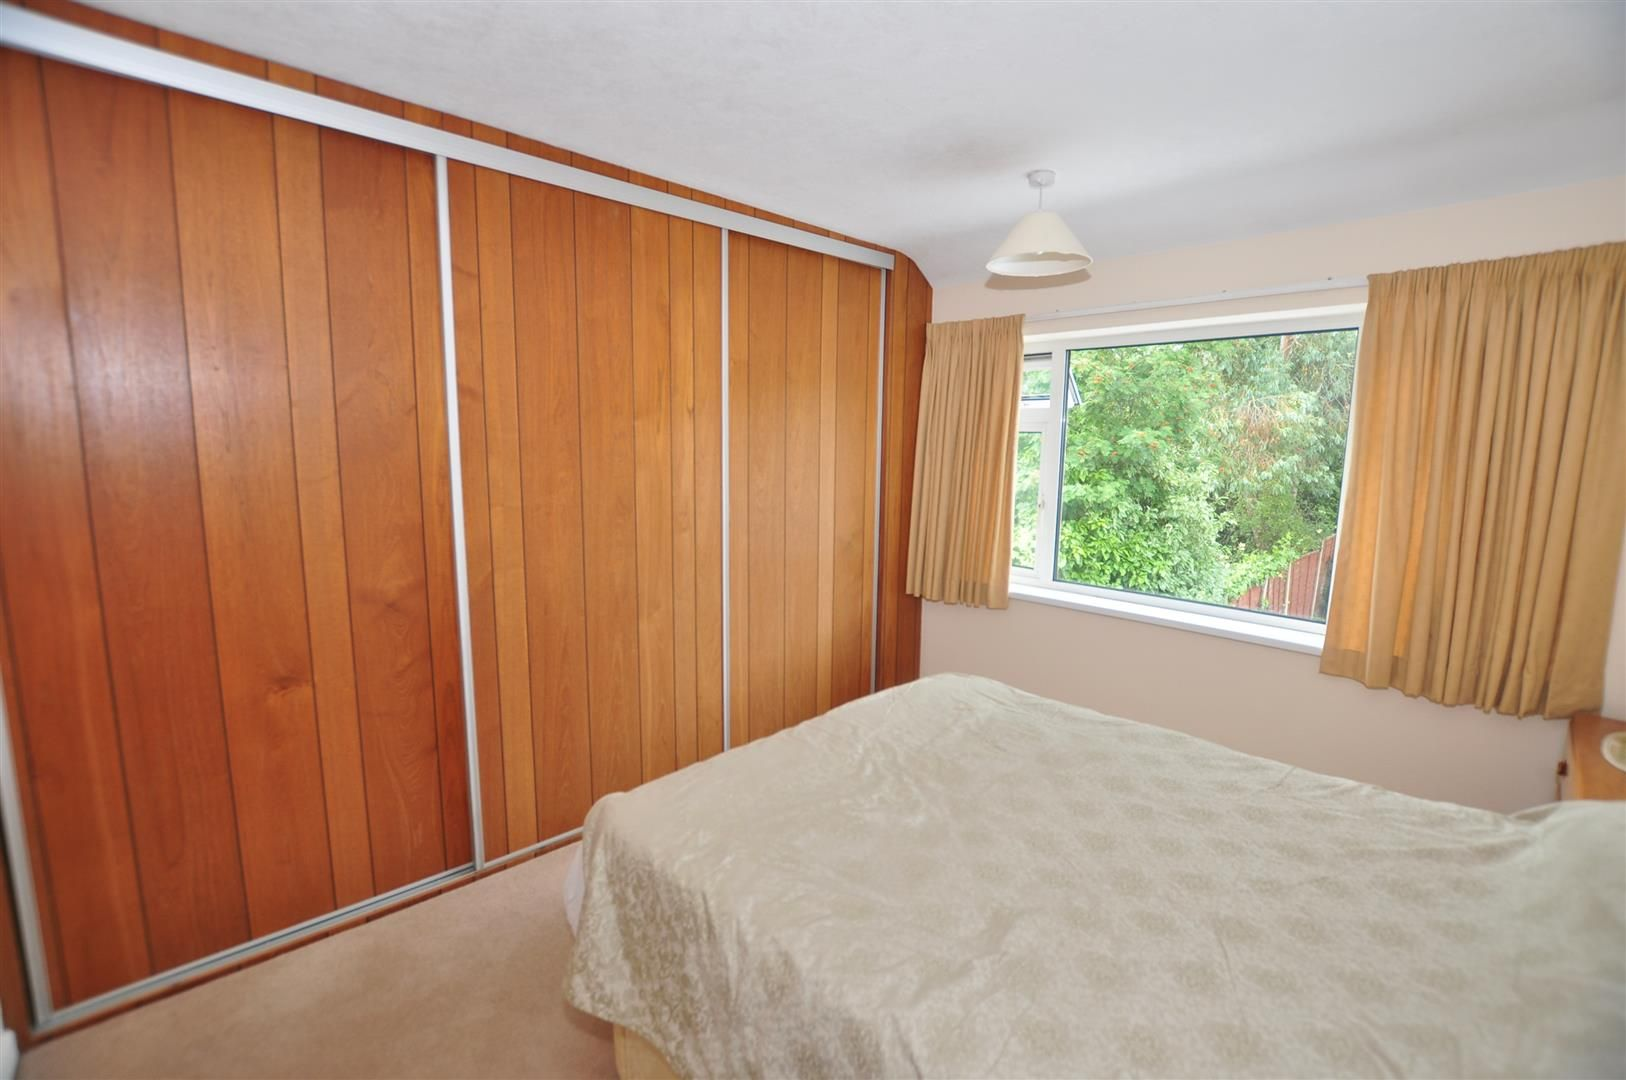 3 bed semi-detached for sale in Hagley 9